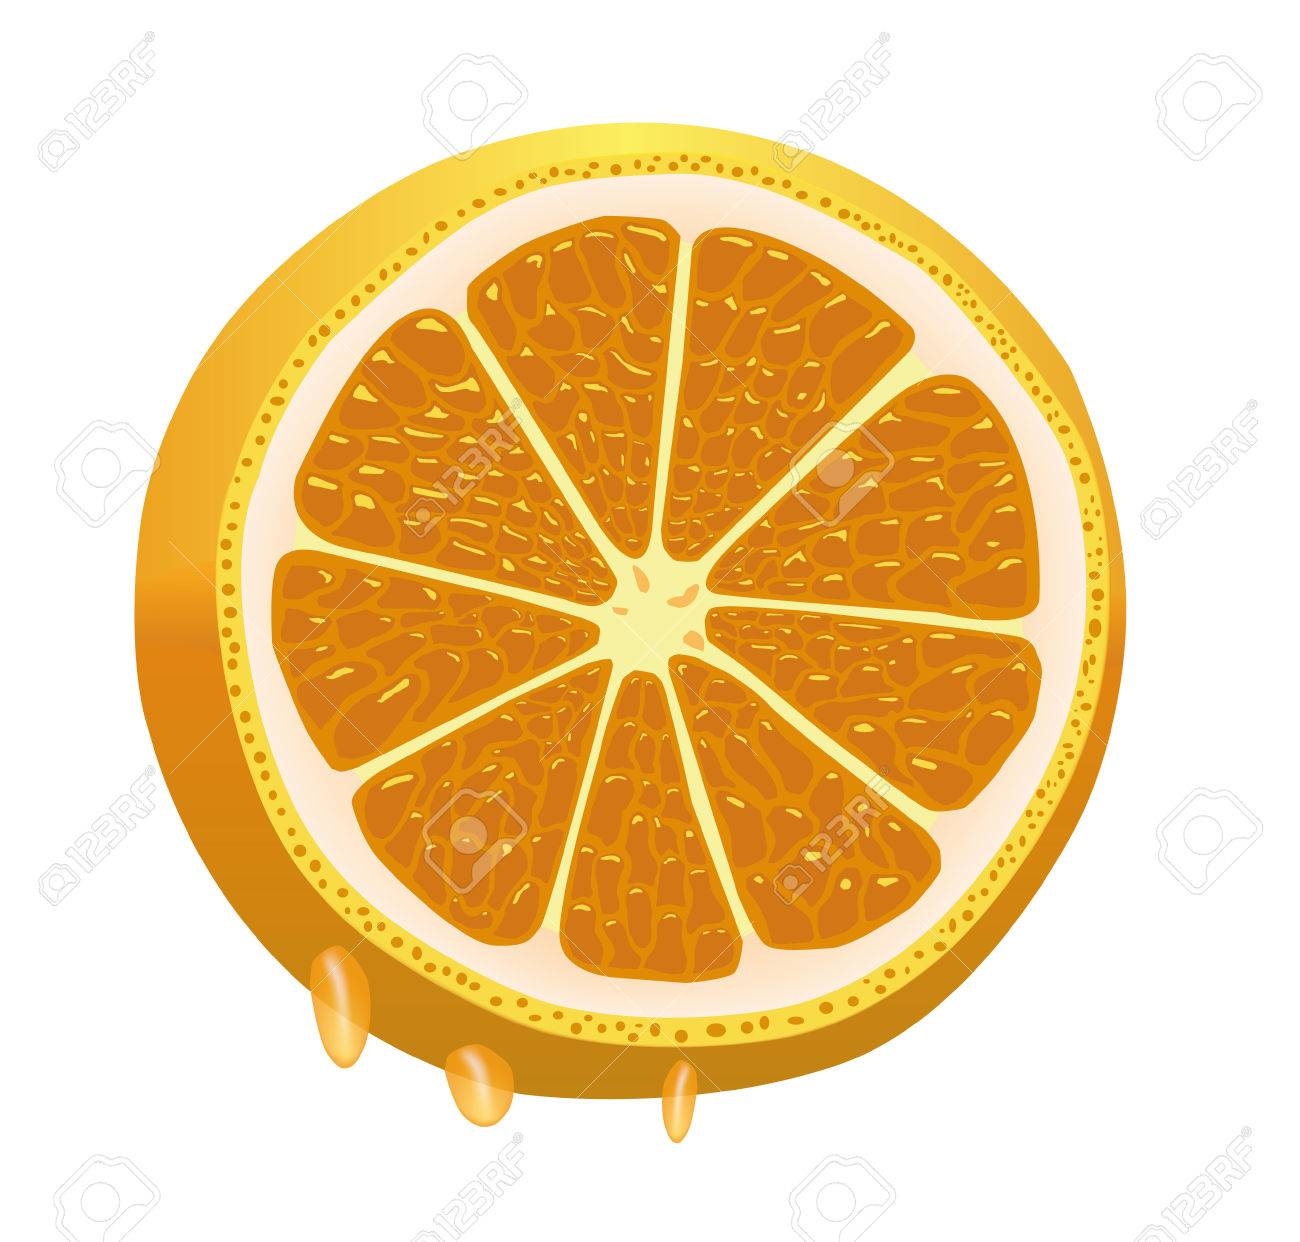 Nice juicy sliced orange, dripping with juice